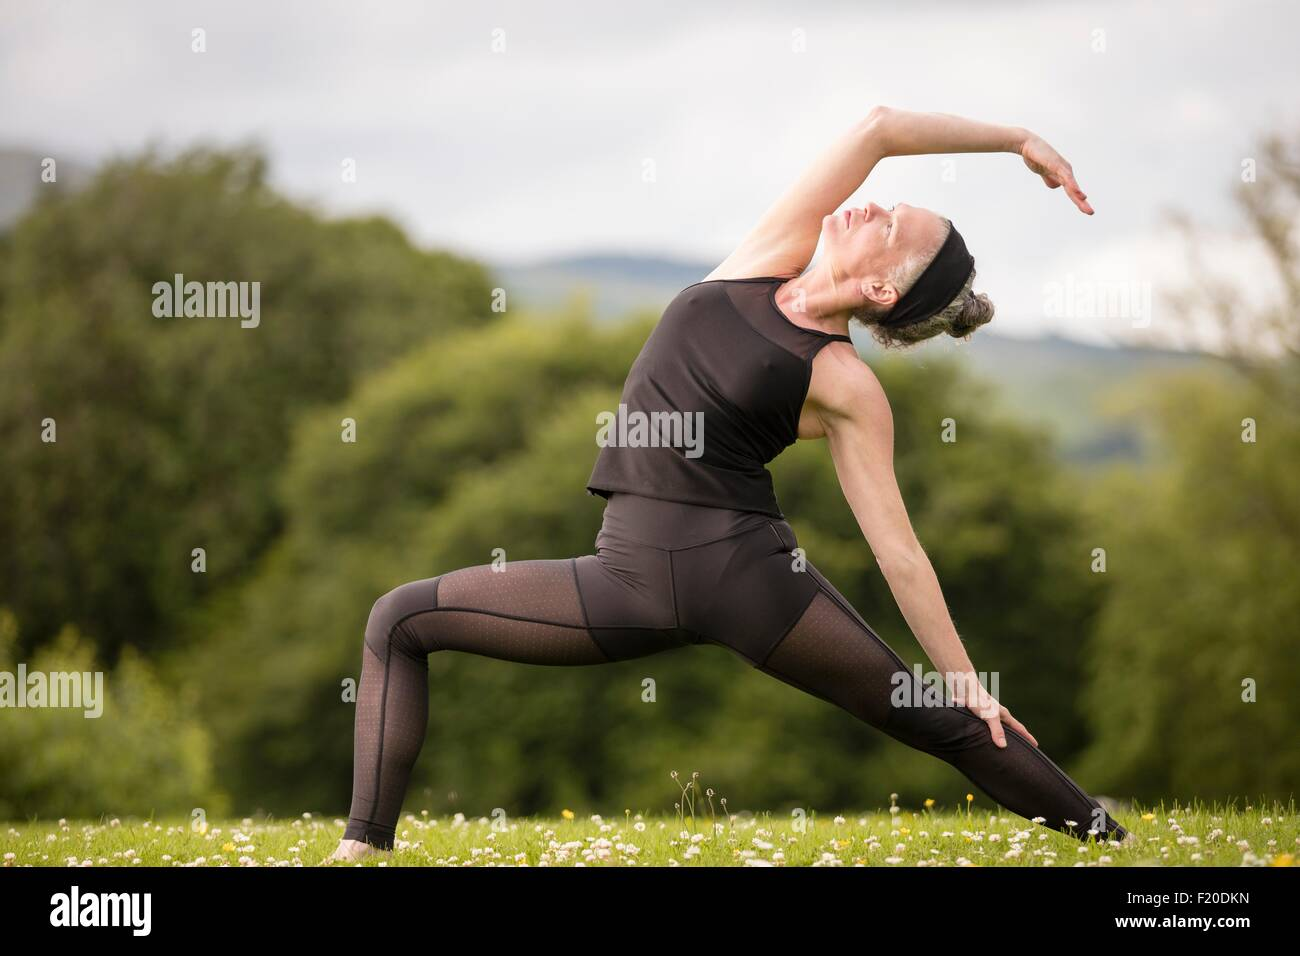 Mature woman practicing yoga pose in field - Stock Image